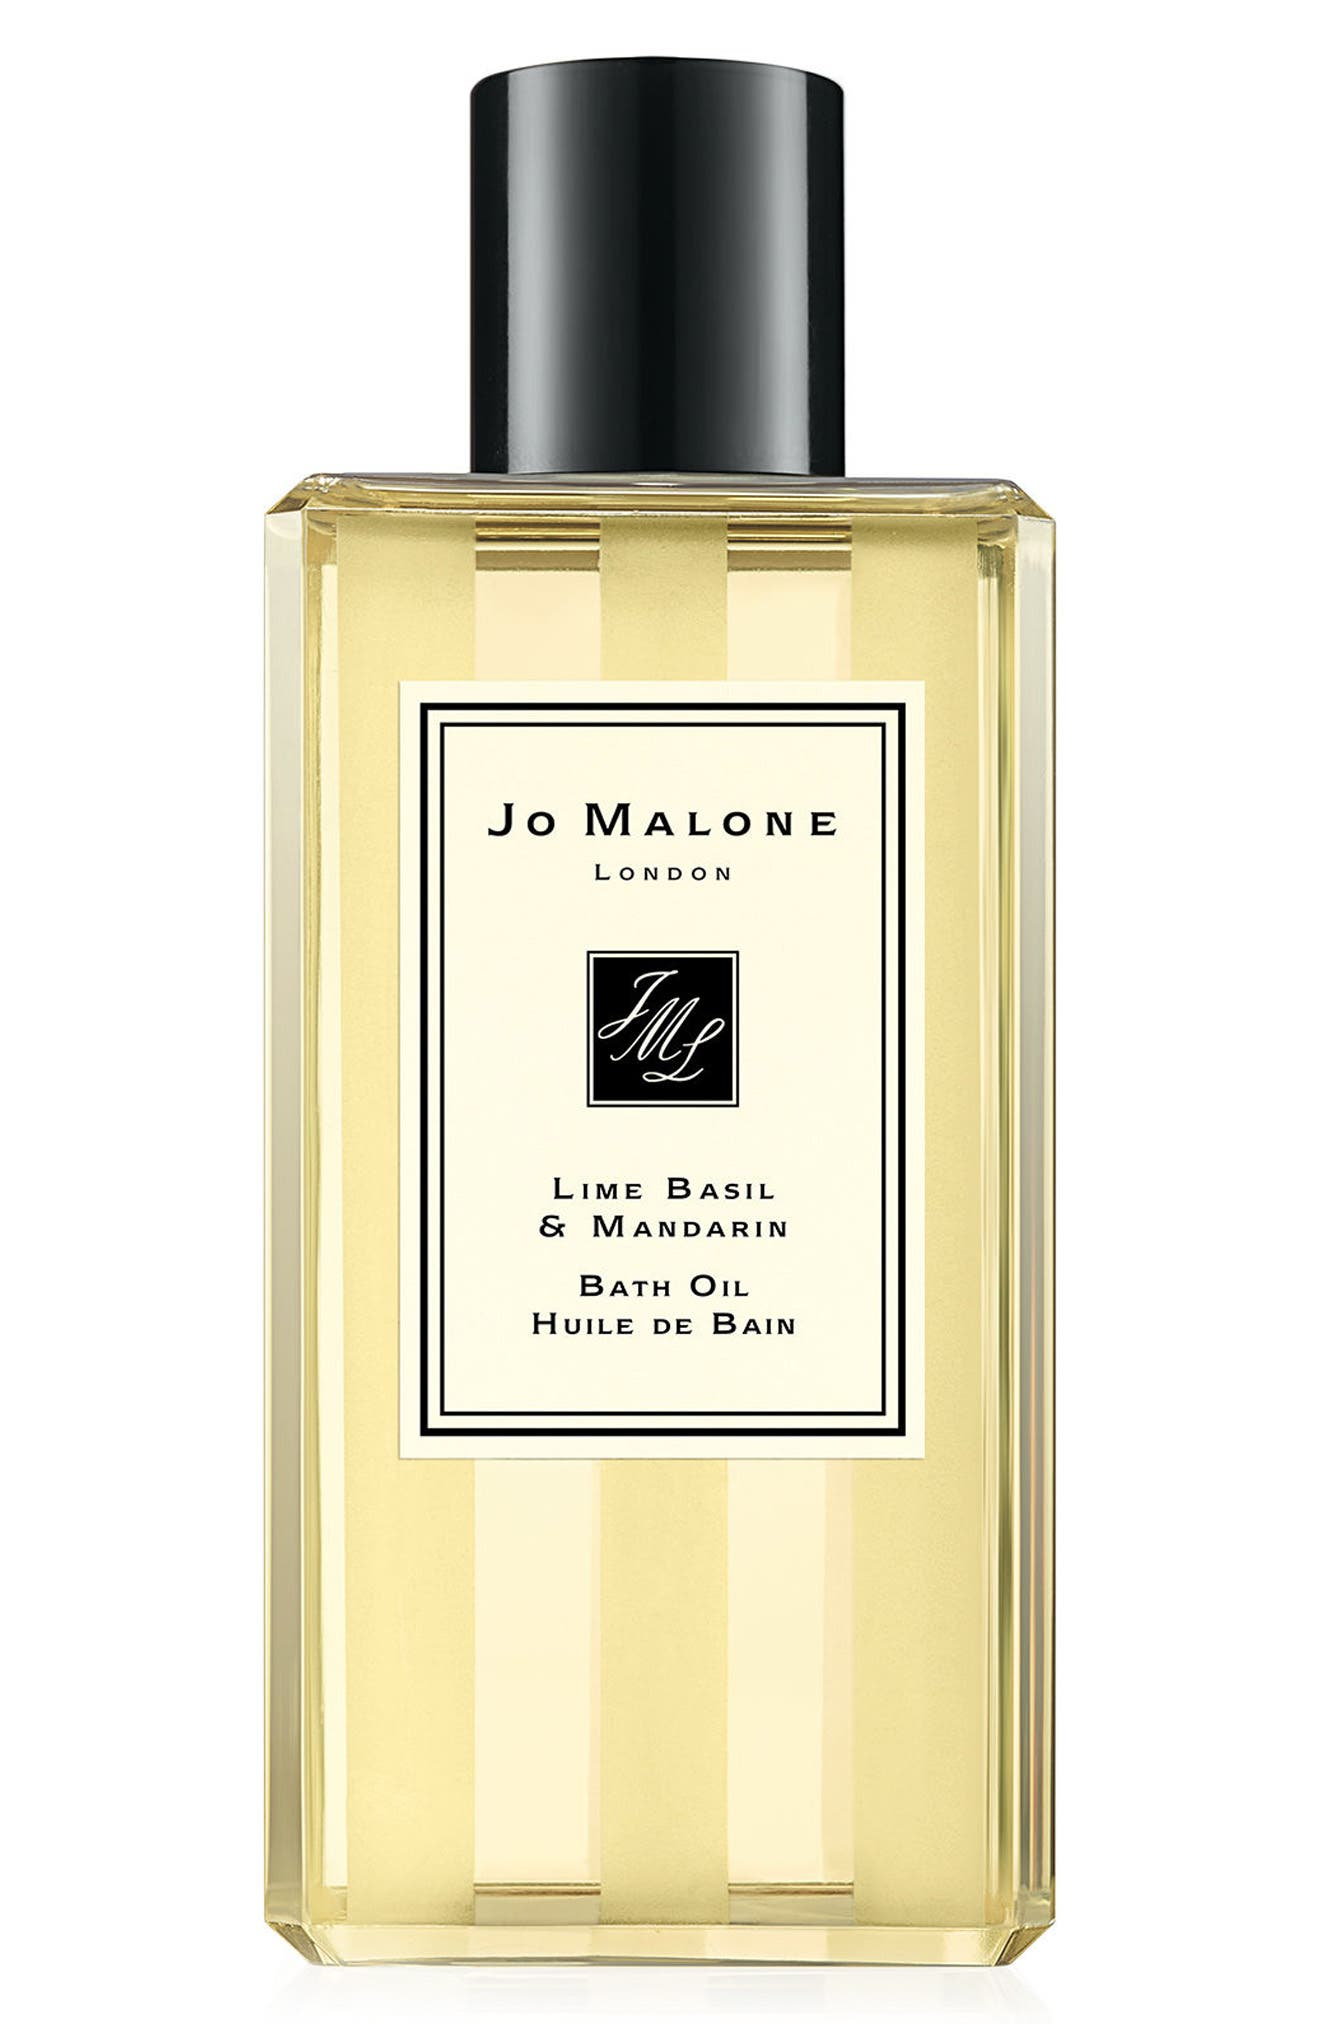 Jo Malone London™ Lime Basil & Mandarin Bath Oil (8.5 oz.)